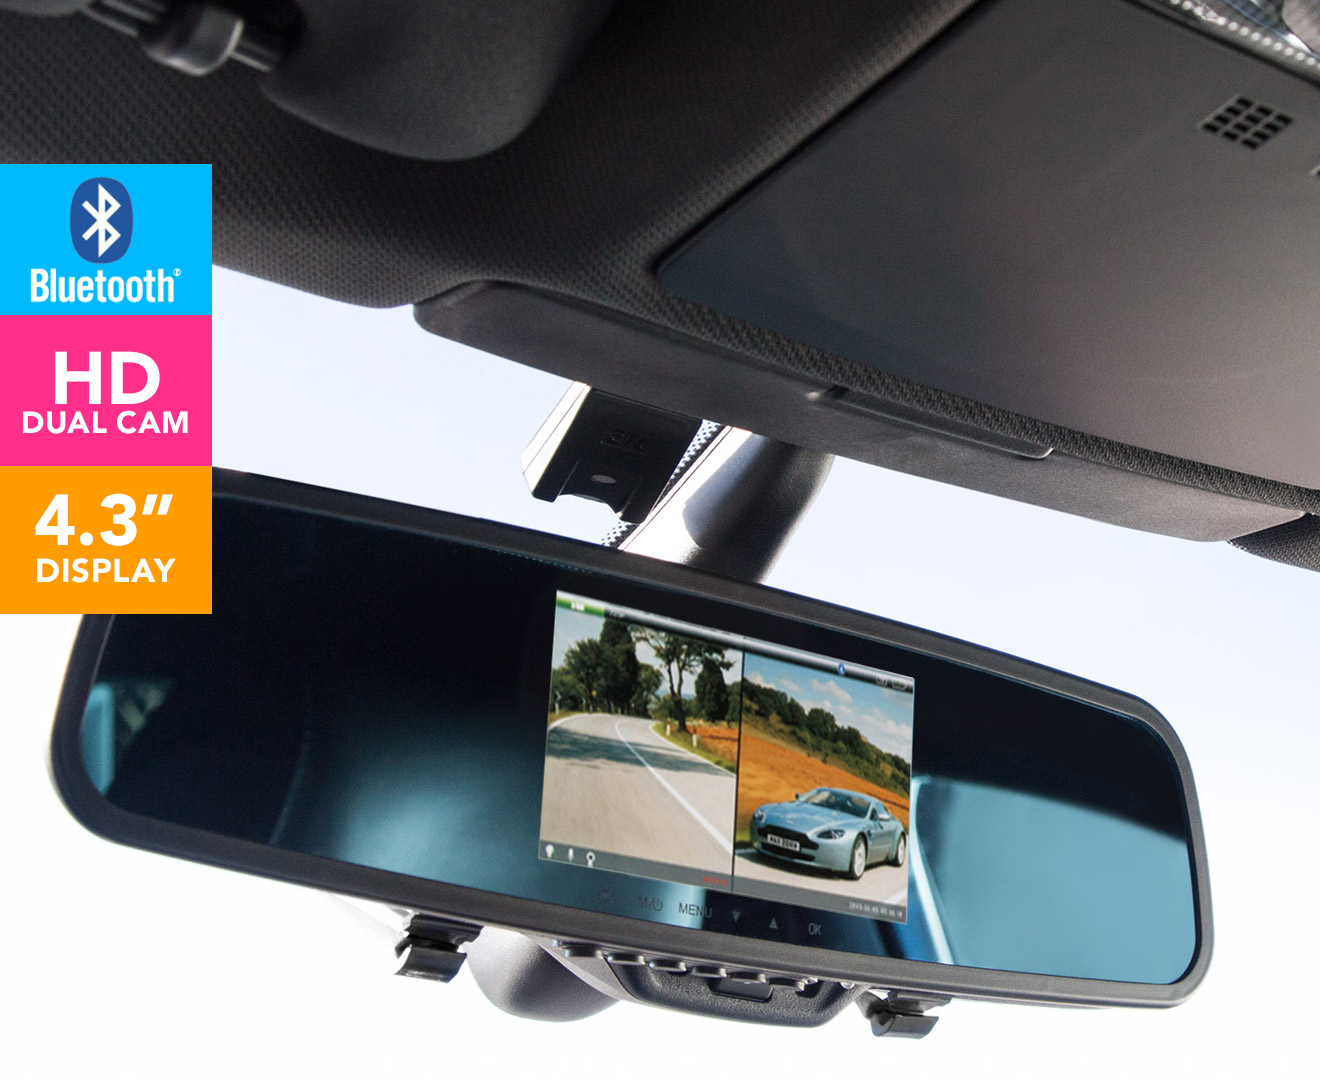 Full HD 1080p Dual Cameras on Rearview Mirror